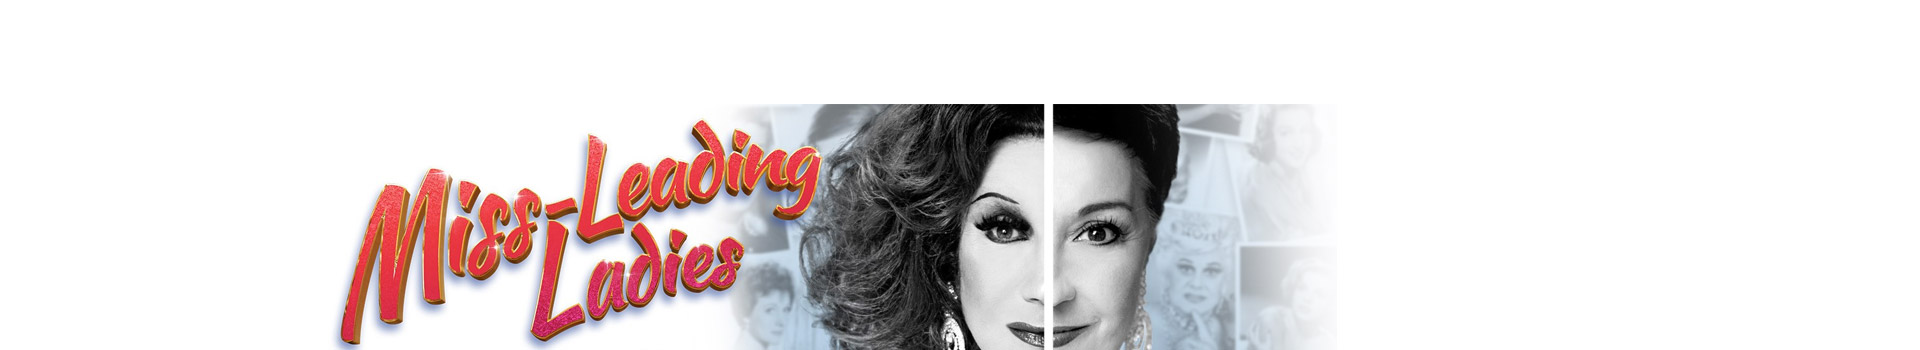 Miss-Leading Ladies tickets London